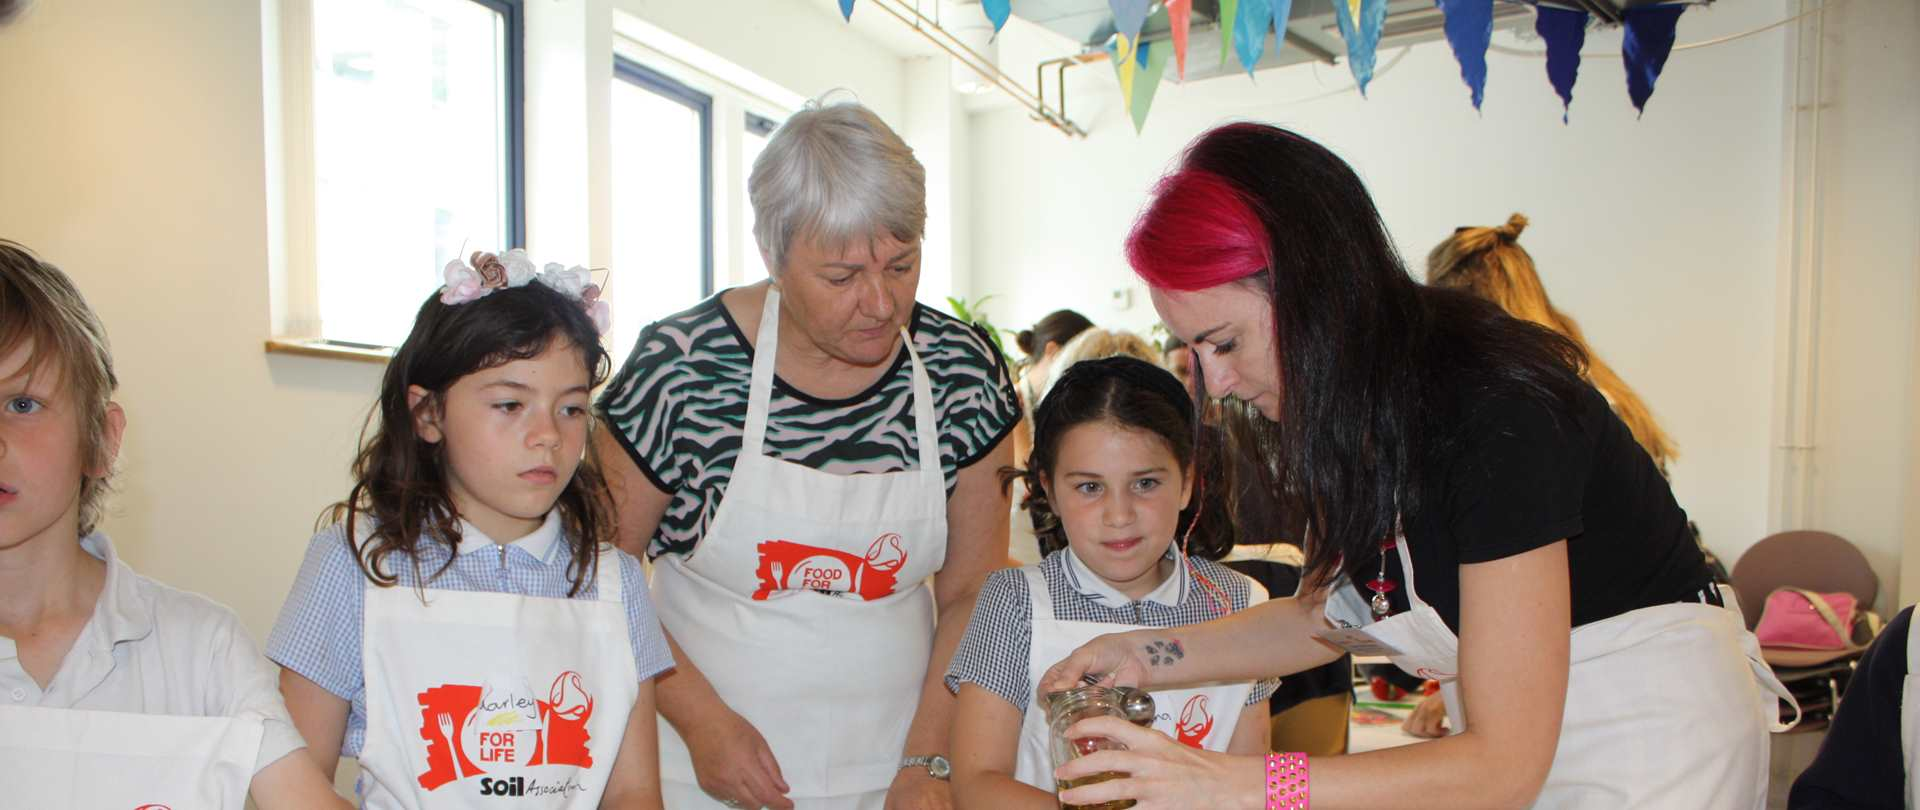 Tow adults and three children wearing Food for Life aprons cooking together